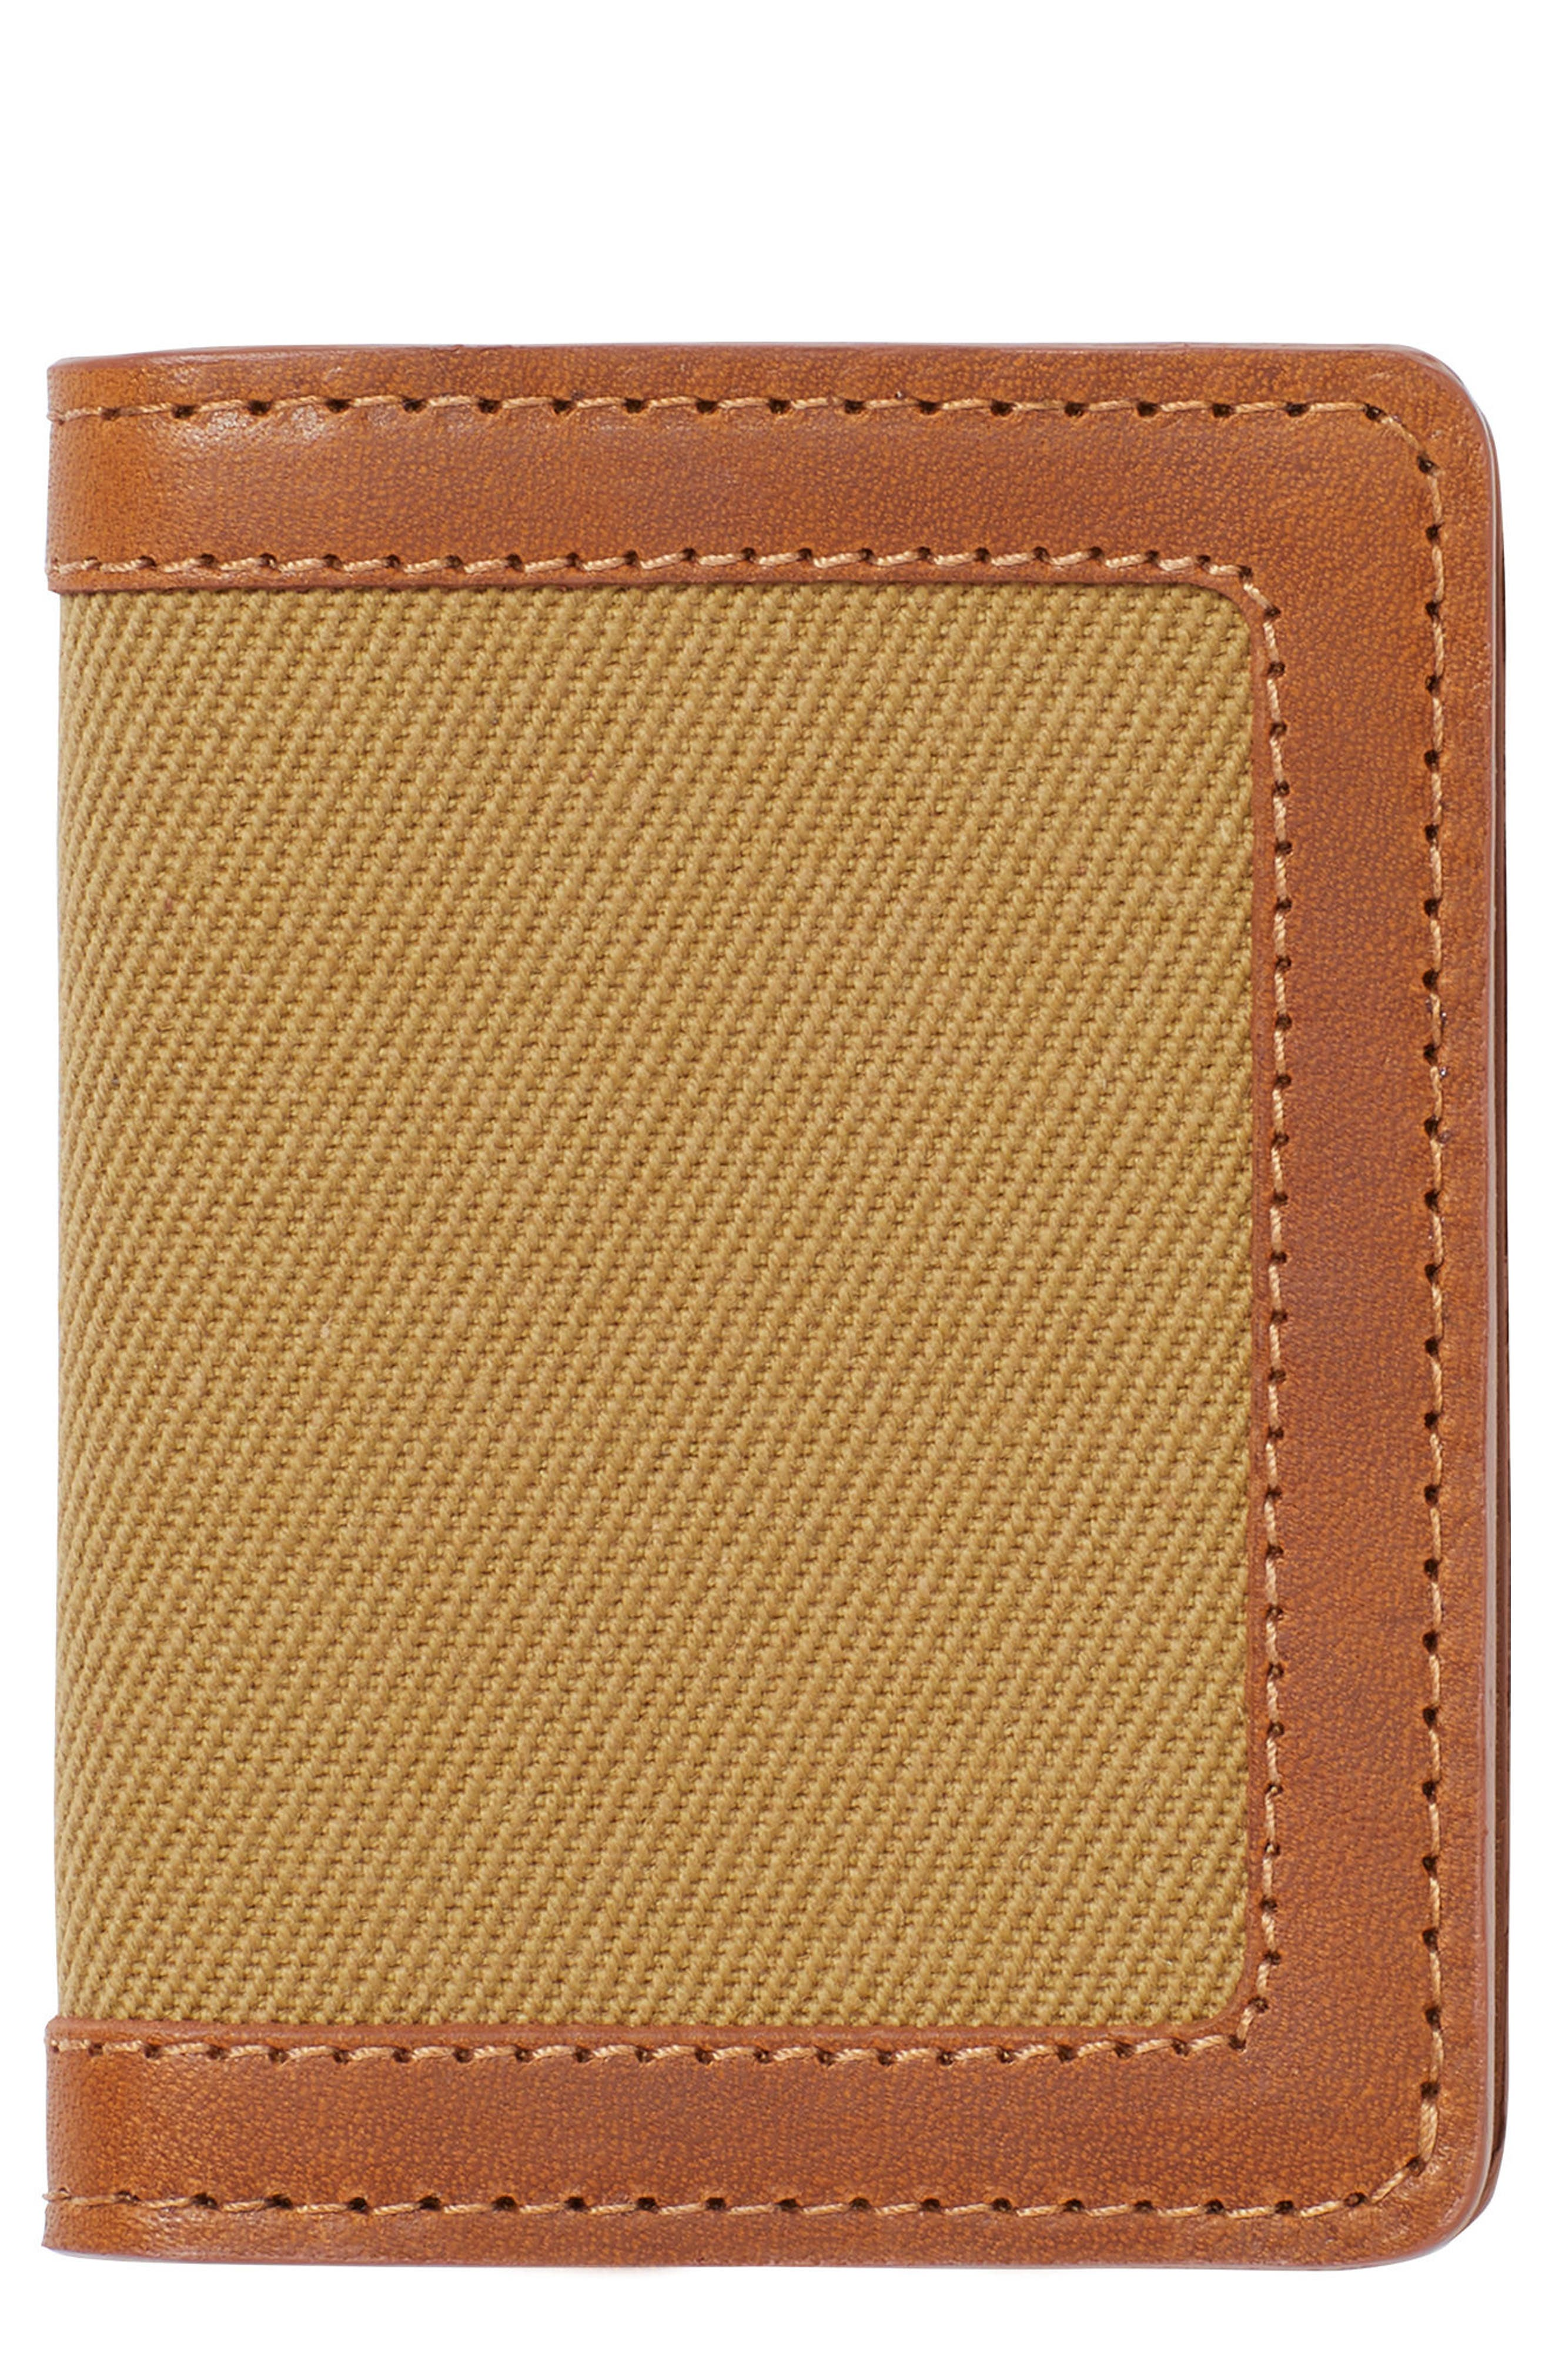 Filson Outfitter Leather & Canvas Card Case